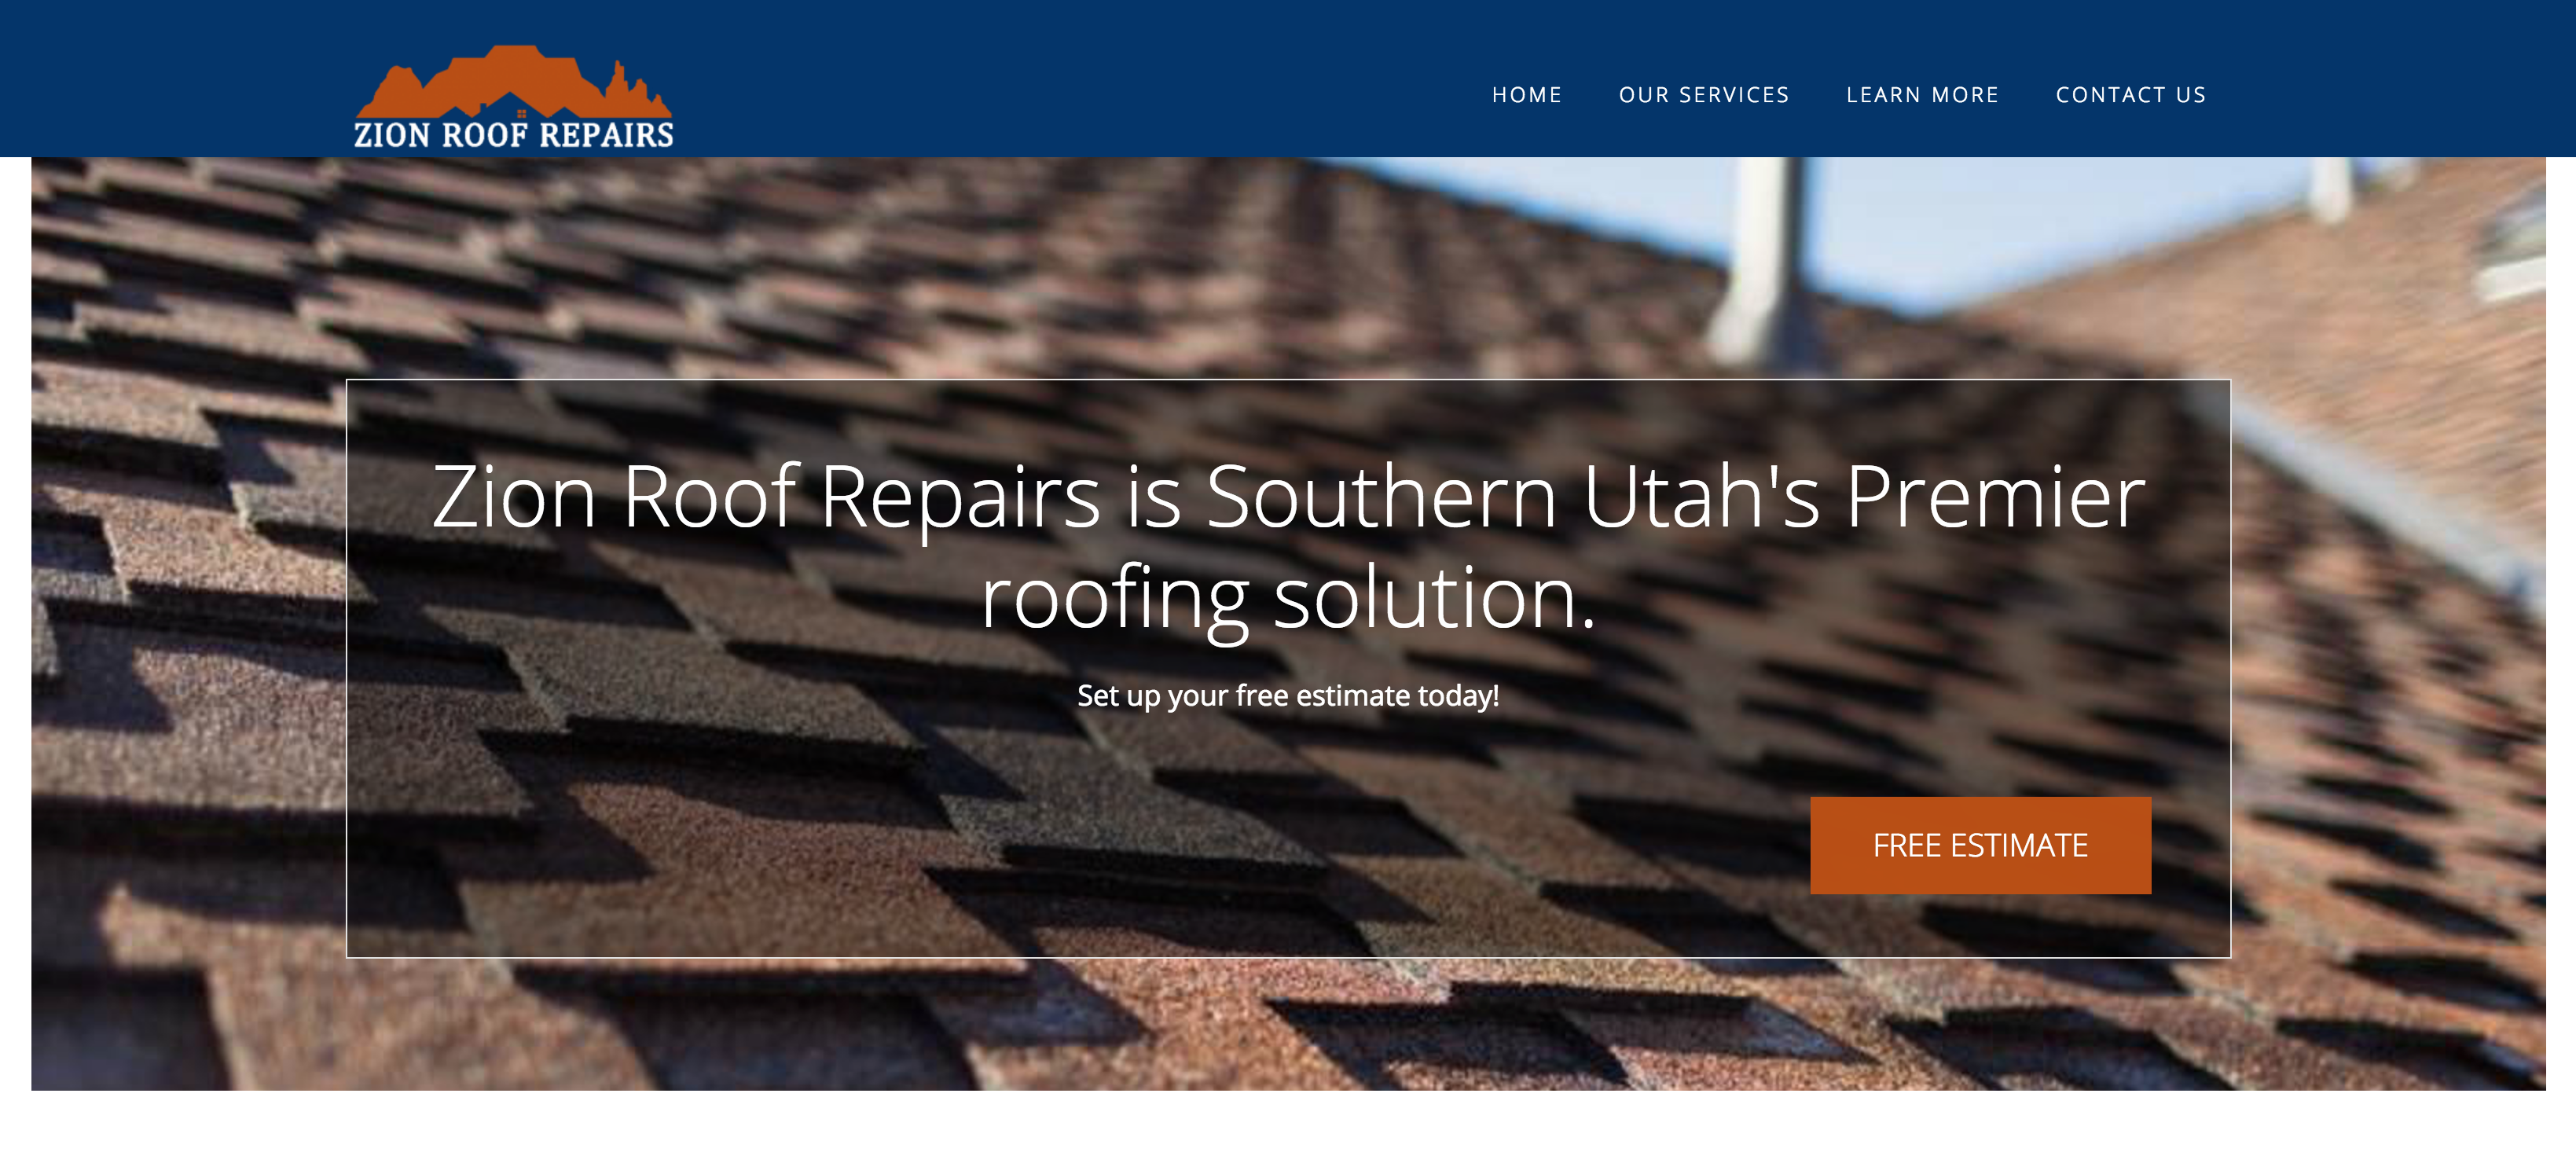 Southern Utah Roofing Contractor